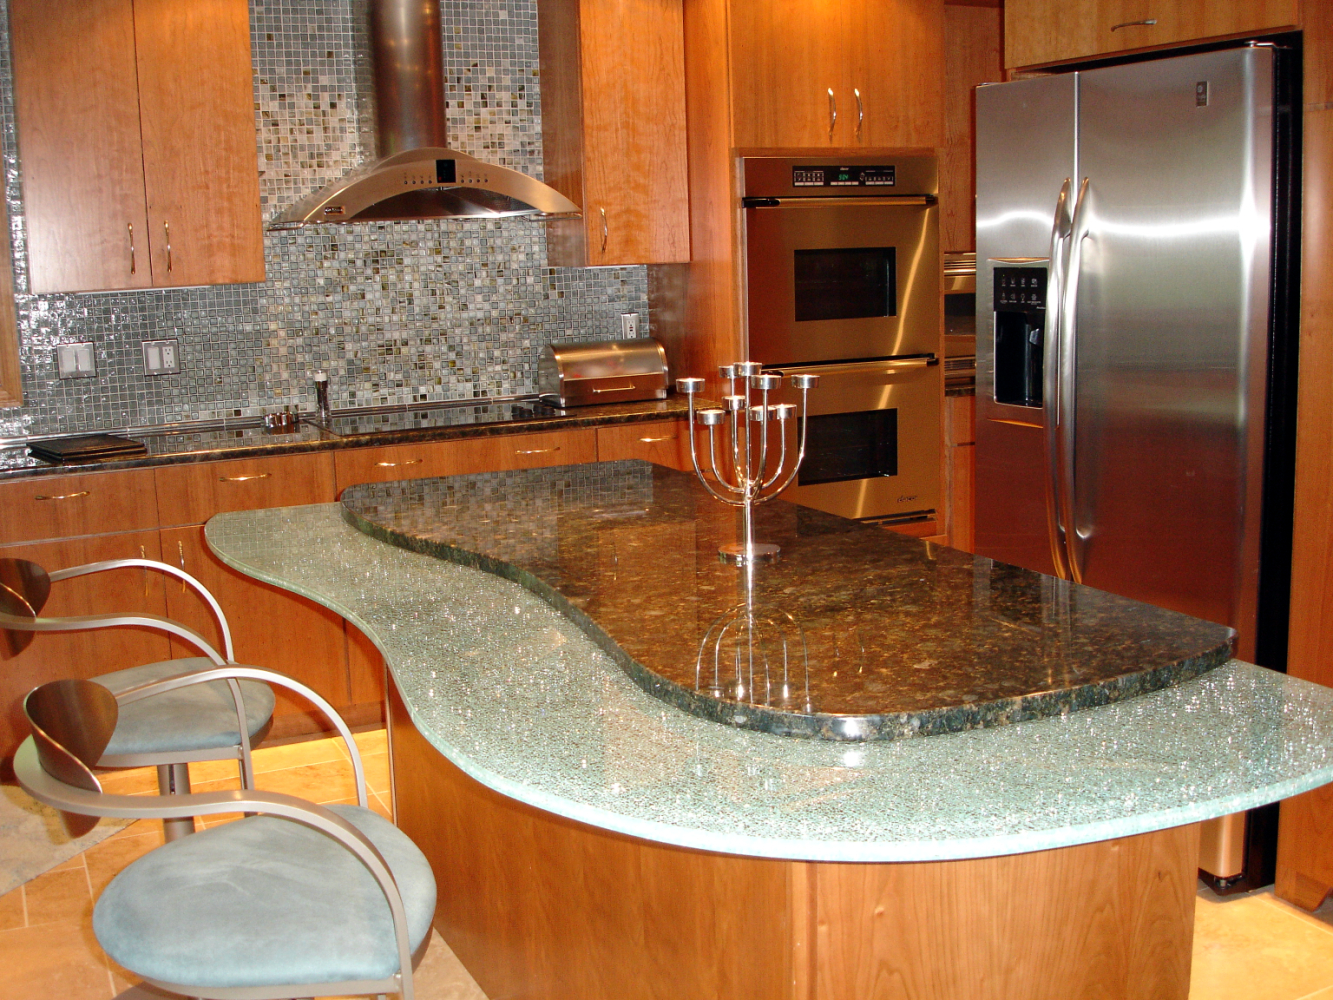 kitchen island design picture ideas for a kitchen island bill house plans 903